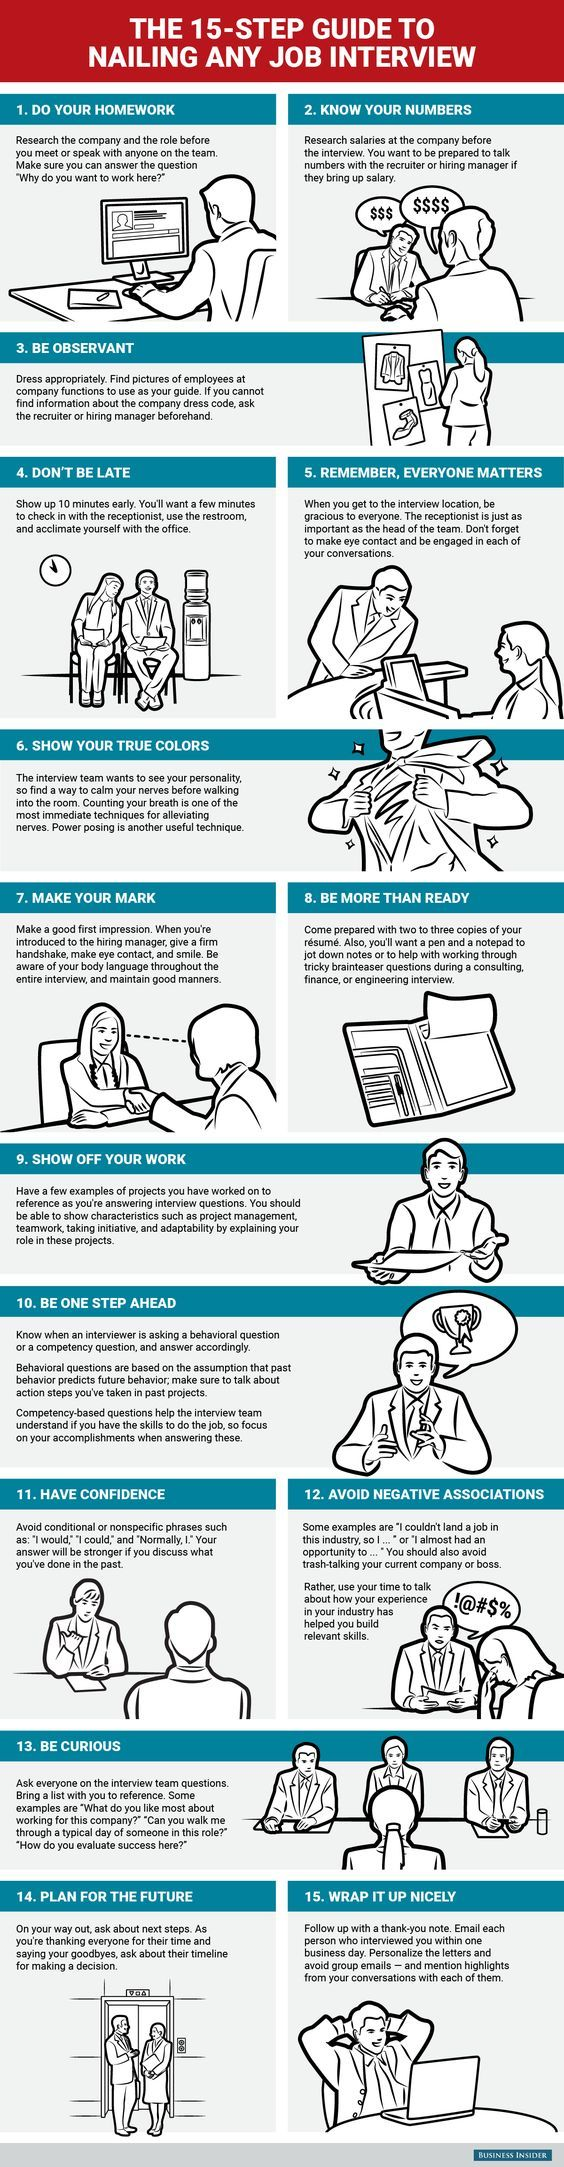 148 Best Job Interview Tips Images On Pinterest